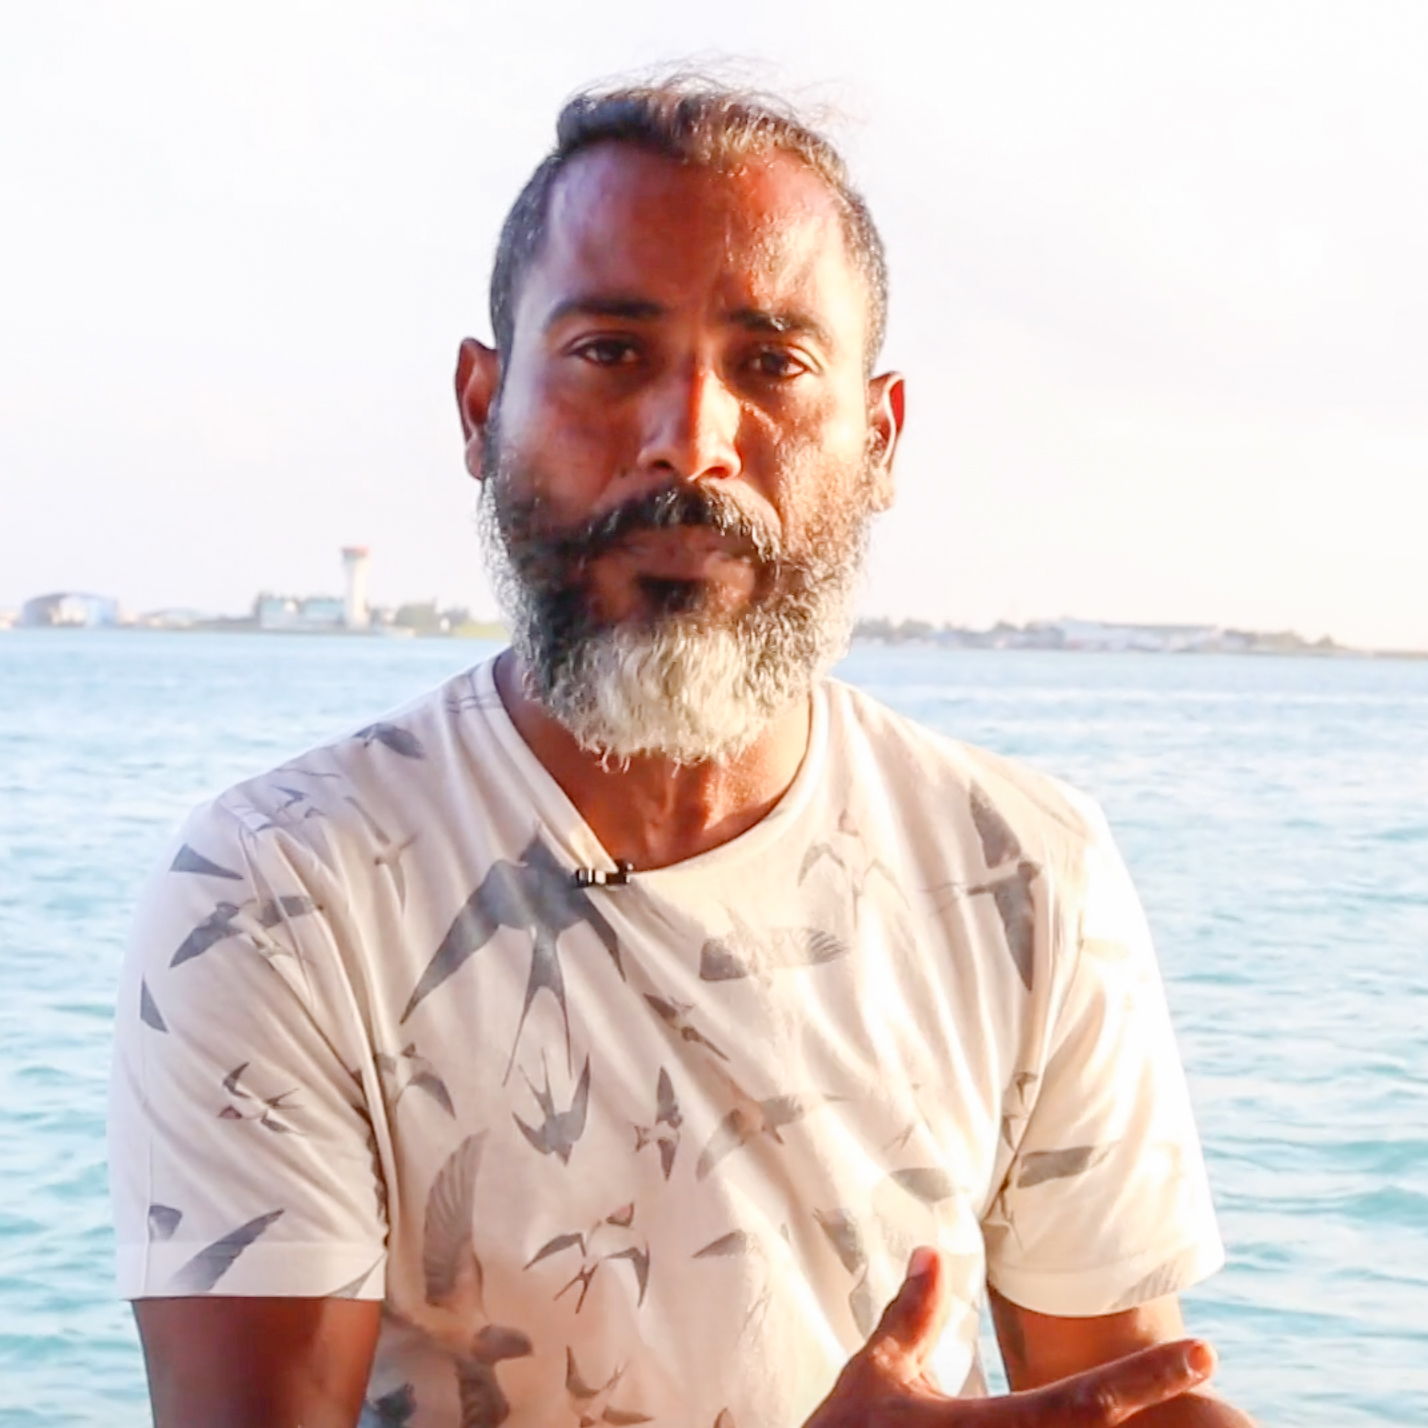 Hassan (Beachey) is one of our Maldivian partners who joined the Hydrous expeditions 2015 and 2016 as a Maldivian fish expert. He is a dive instructor by profession and has been diving in the Maldives for 25 years. His curiosity for the natural environment drives his passion for the conservation of the the Maldivian marine life, flora and fauna. He uses inspiration from these environments in his artwork and designs.